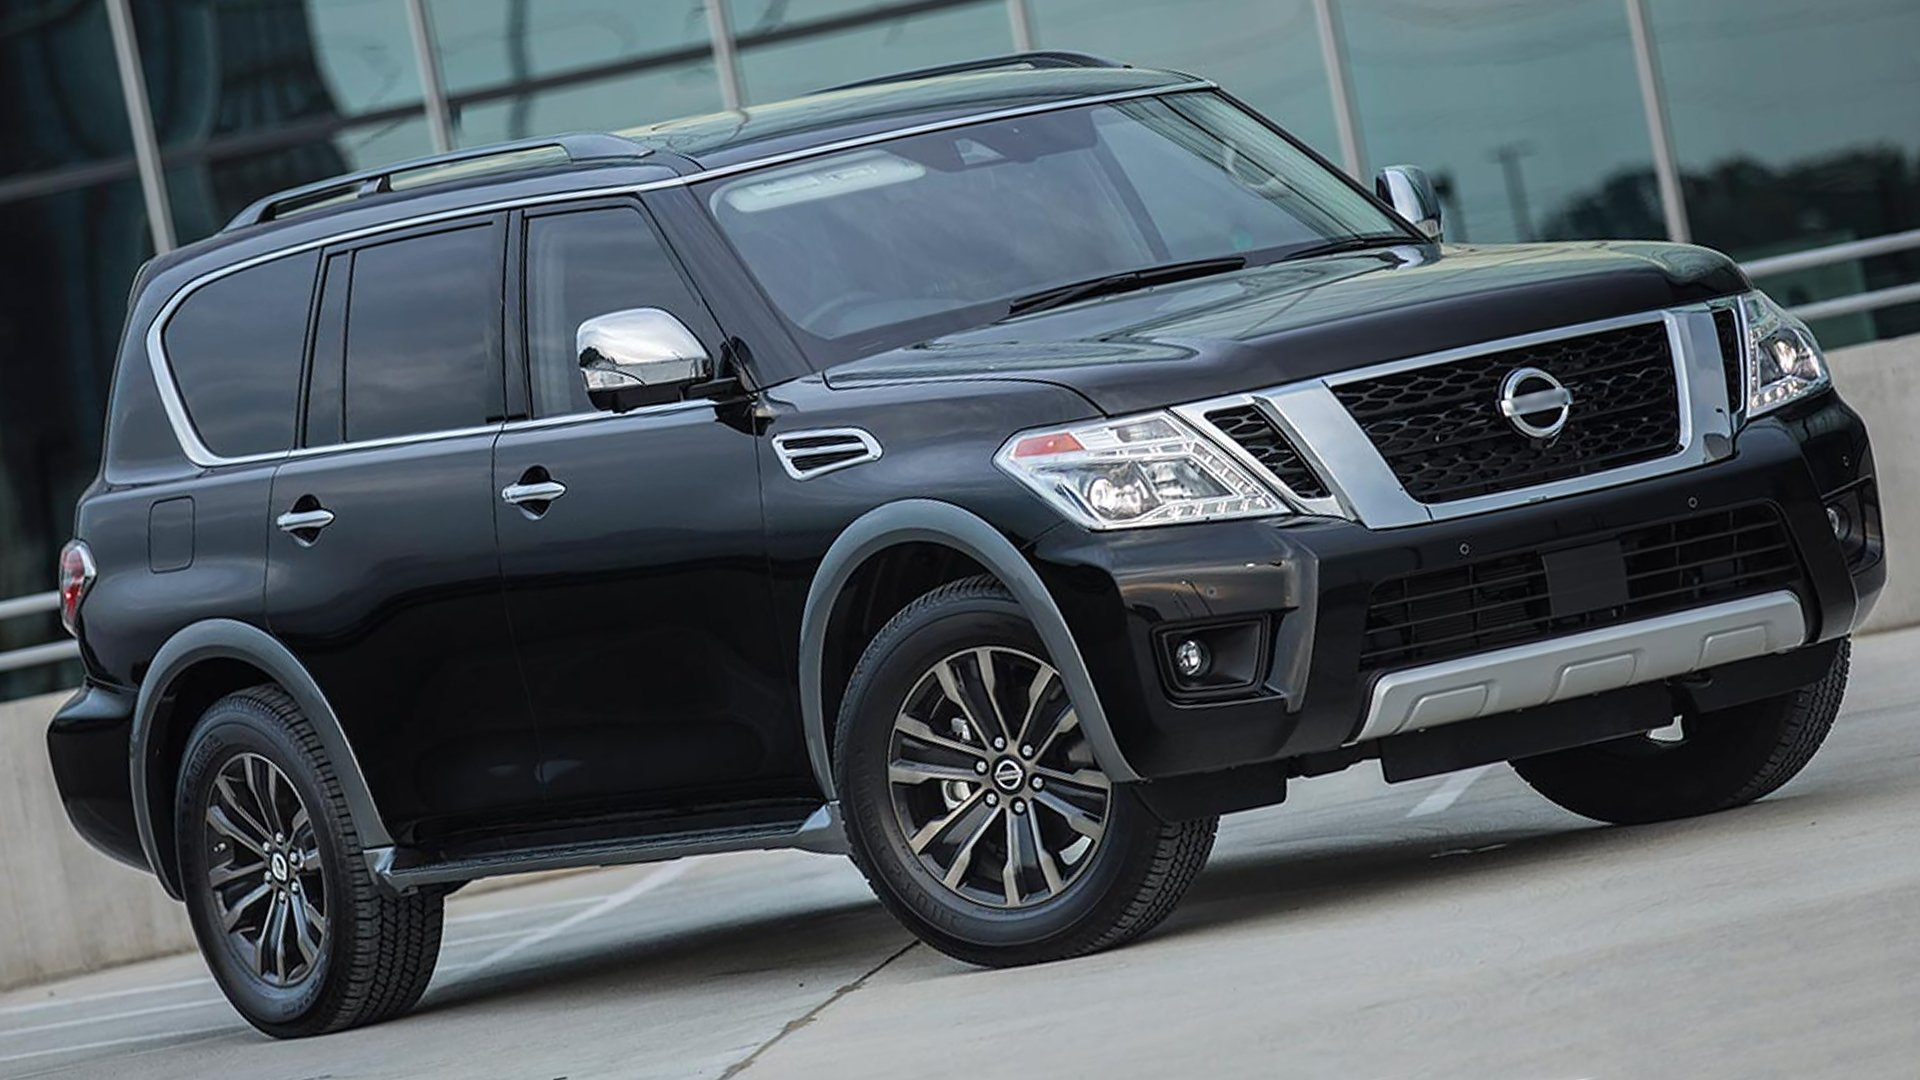 New 2018 Nissan Armada Black HD